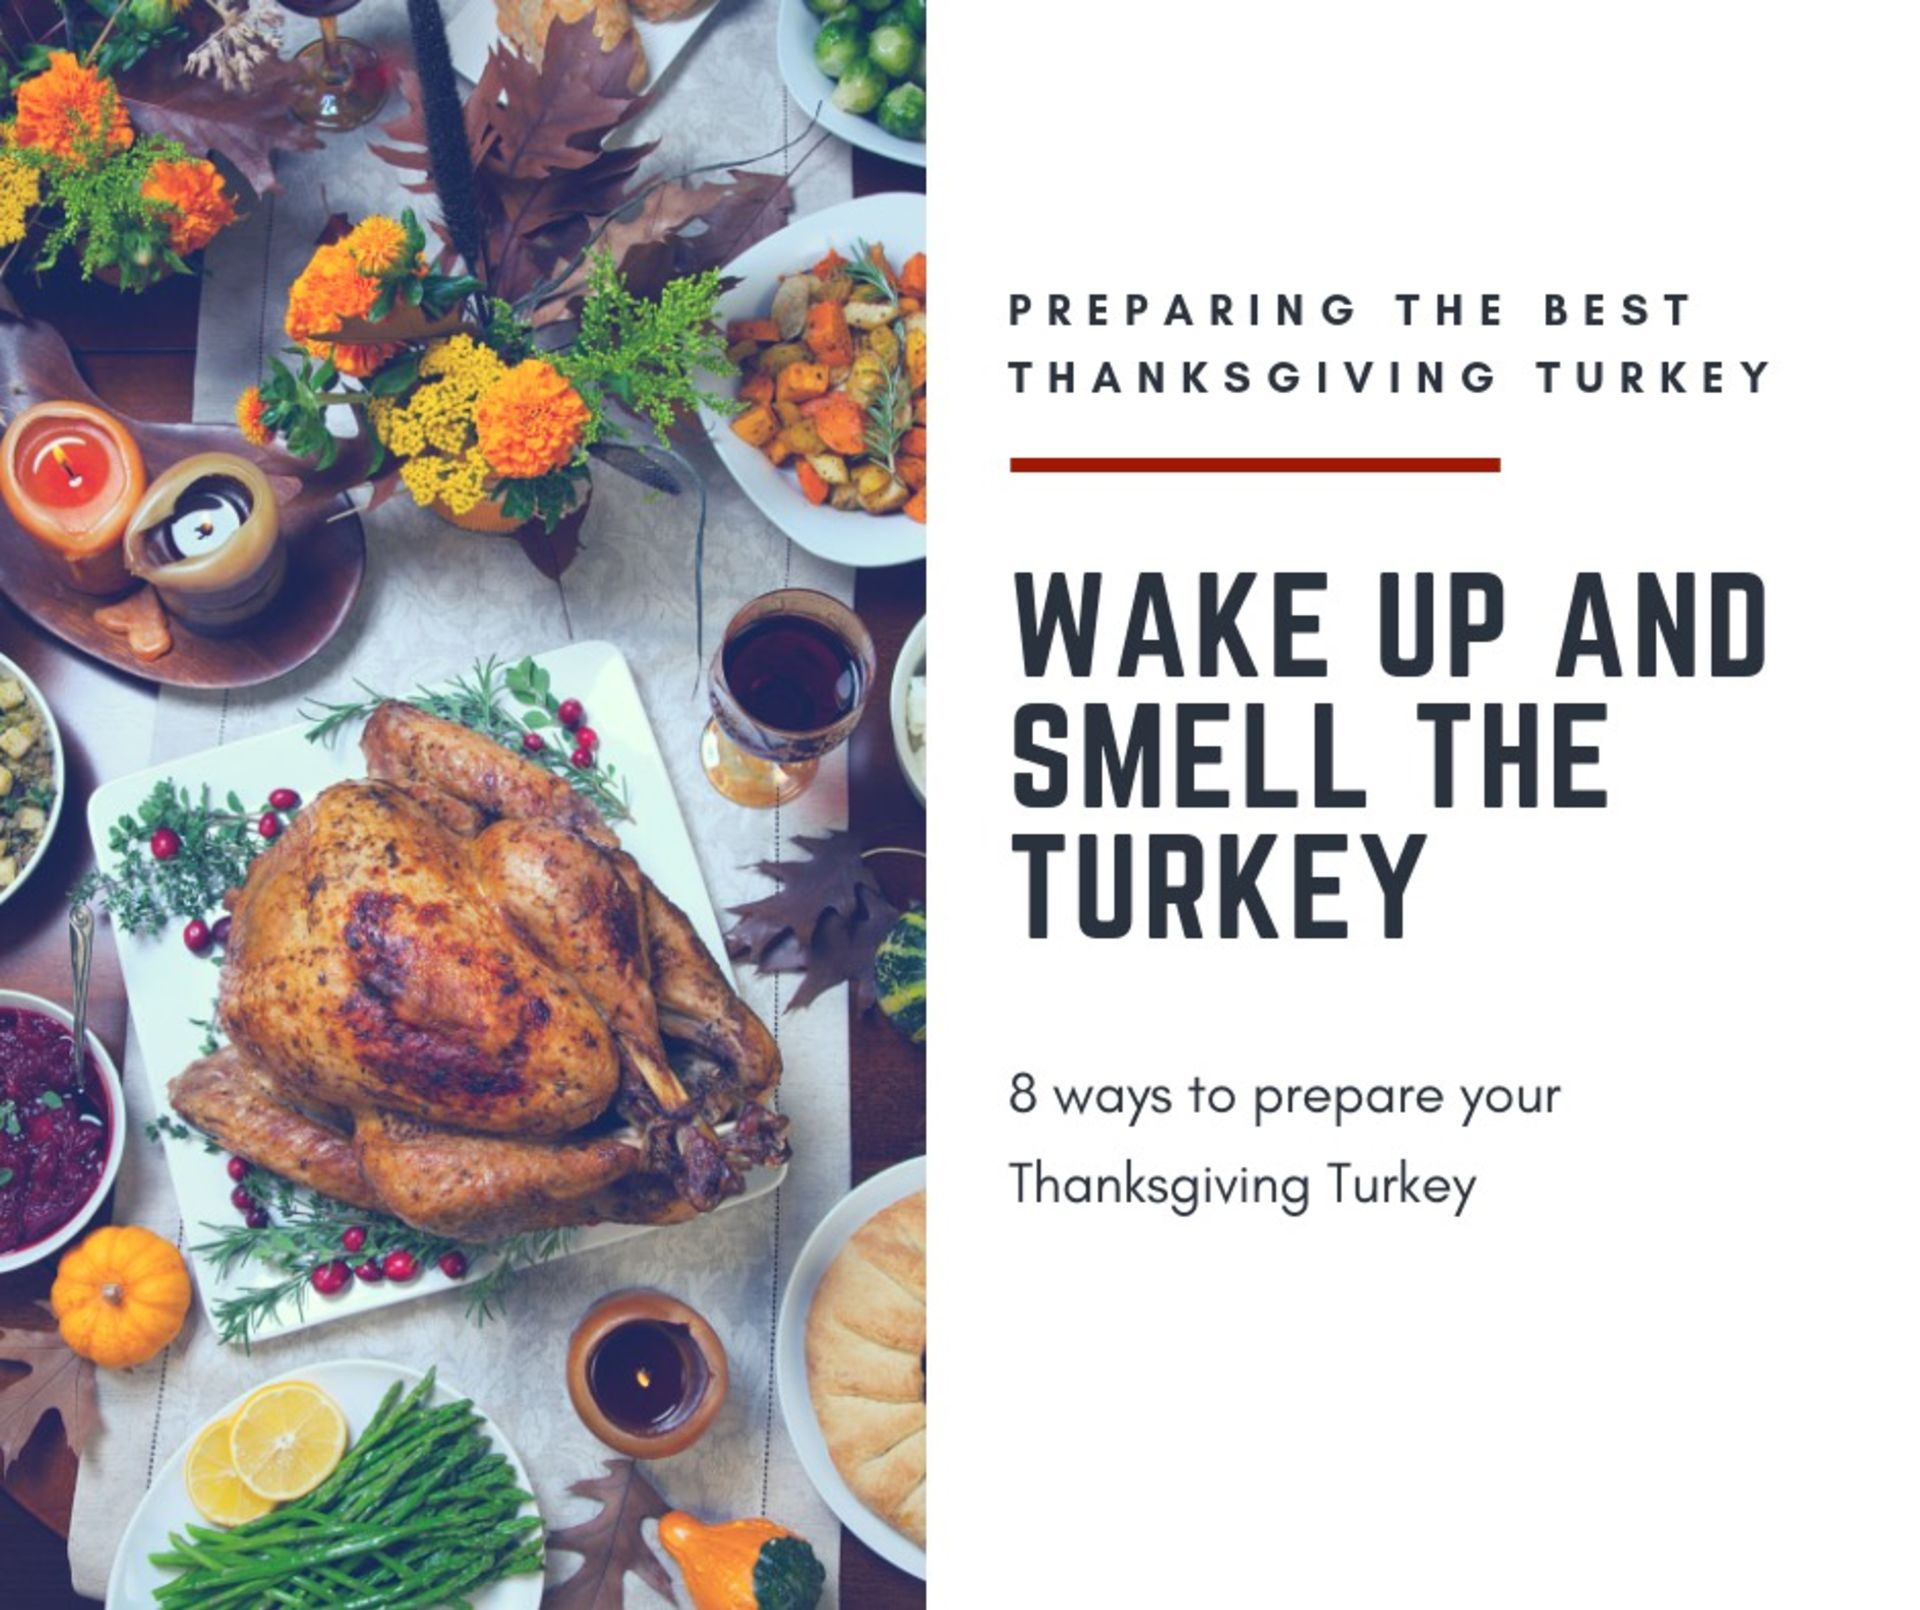 8 Ways to Prepare Your Thanksgiving Turkey